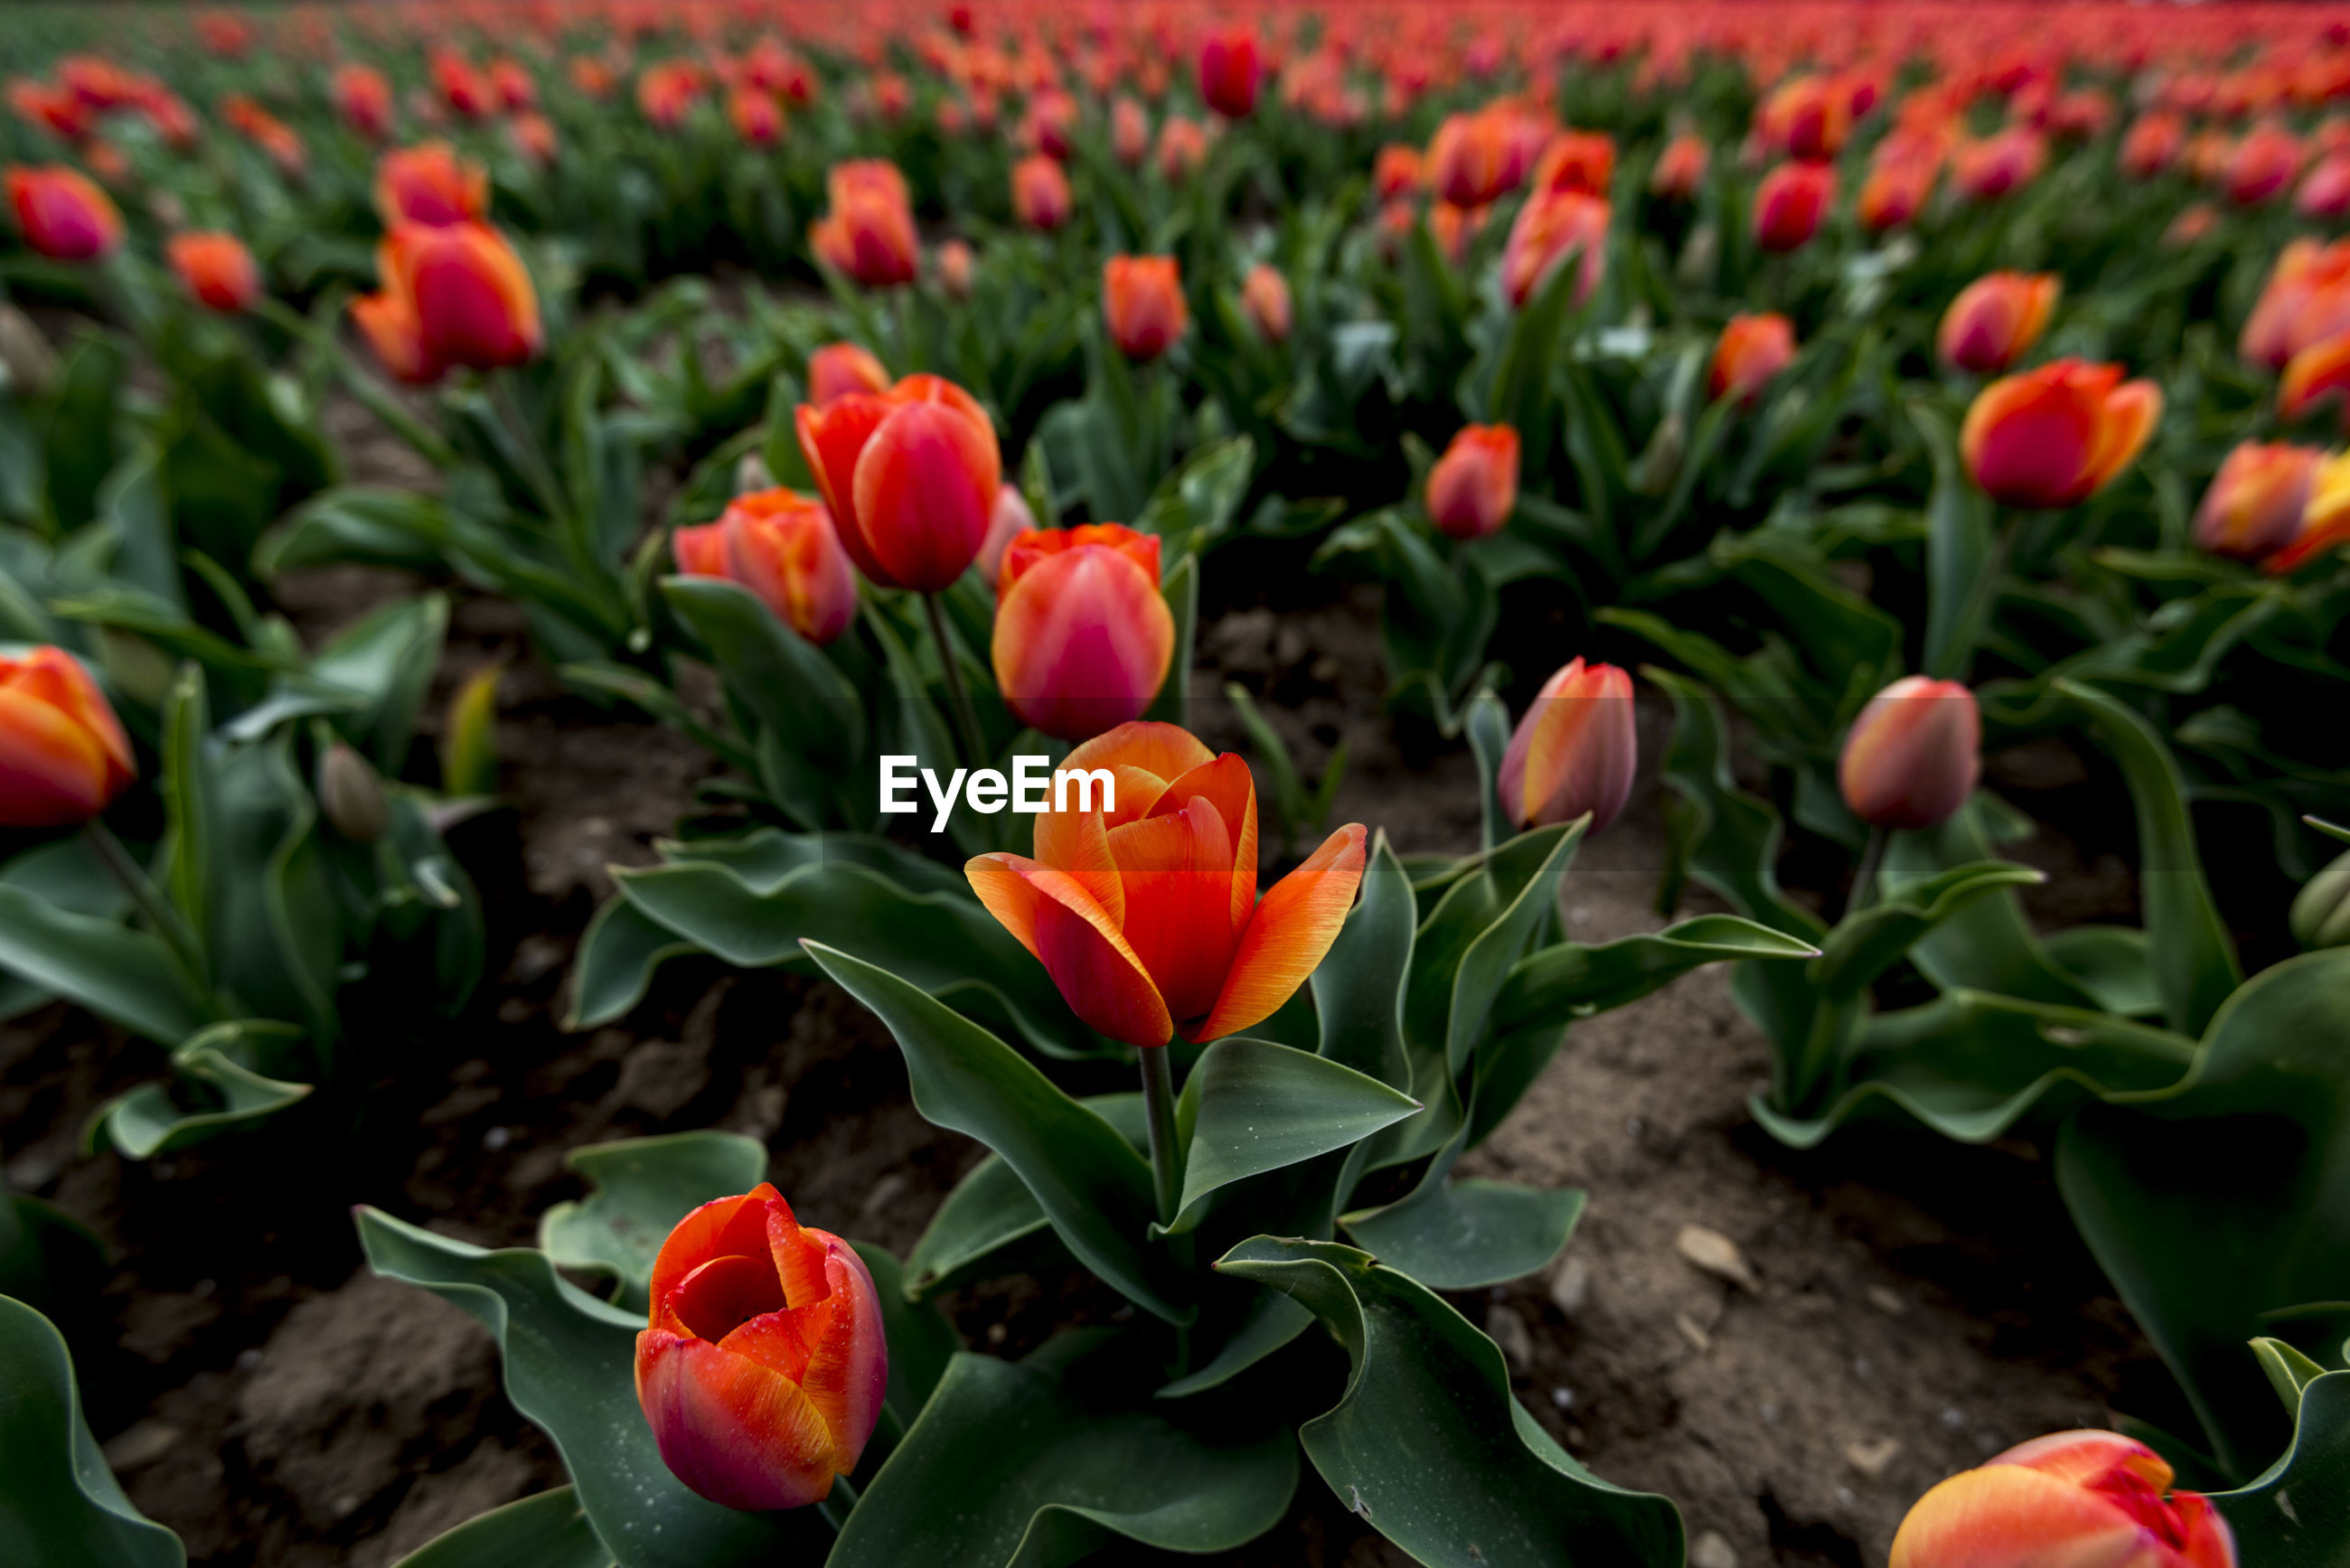 CLOSE-UP OF RED TULIPS IN GARDEN